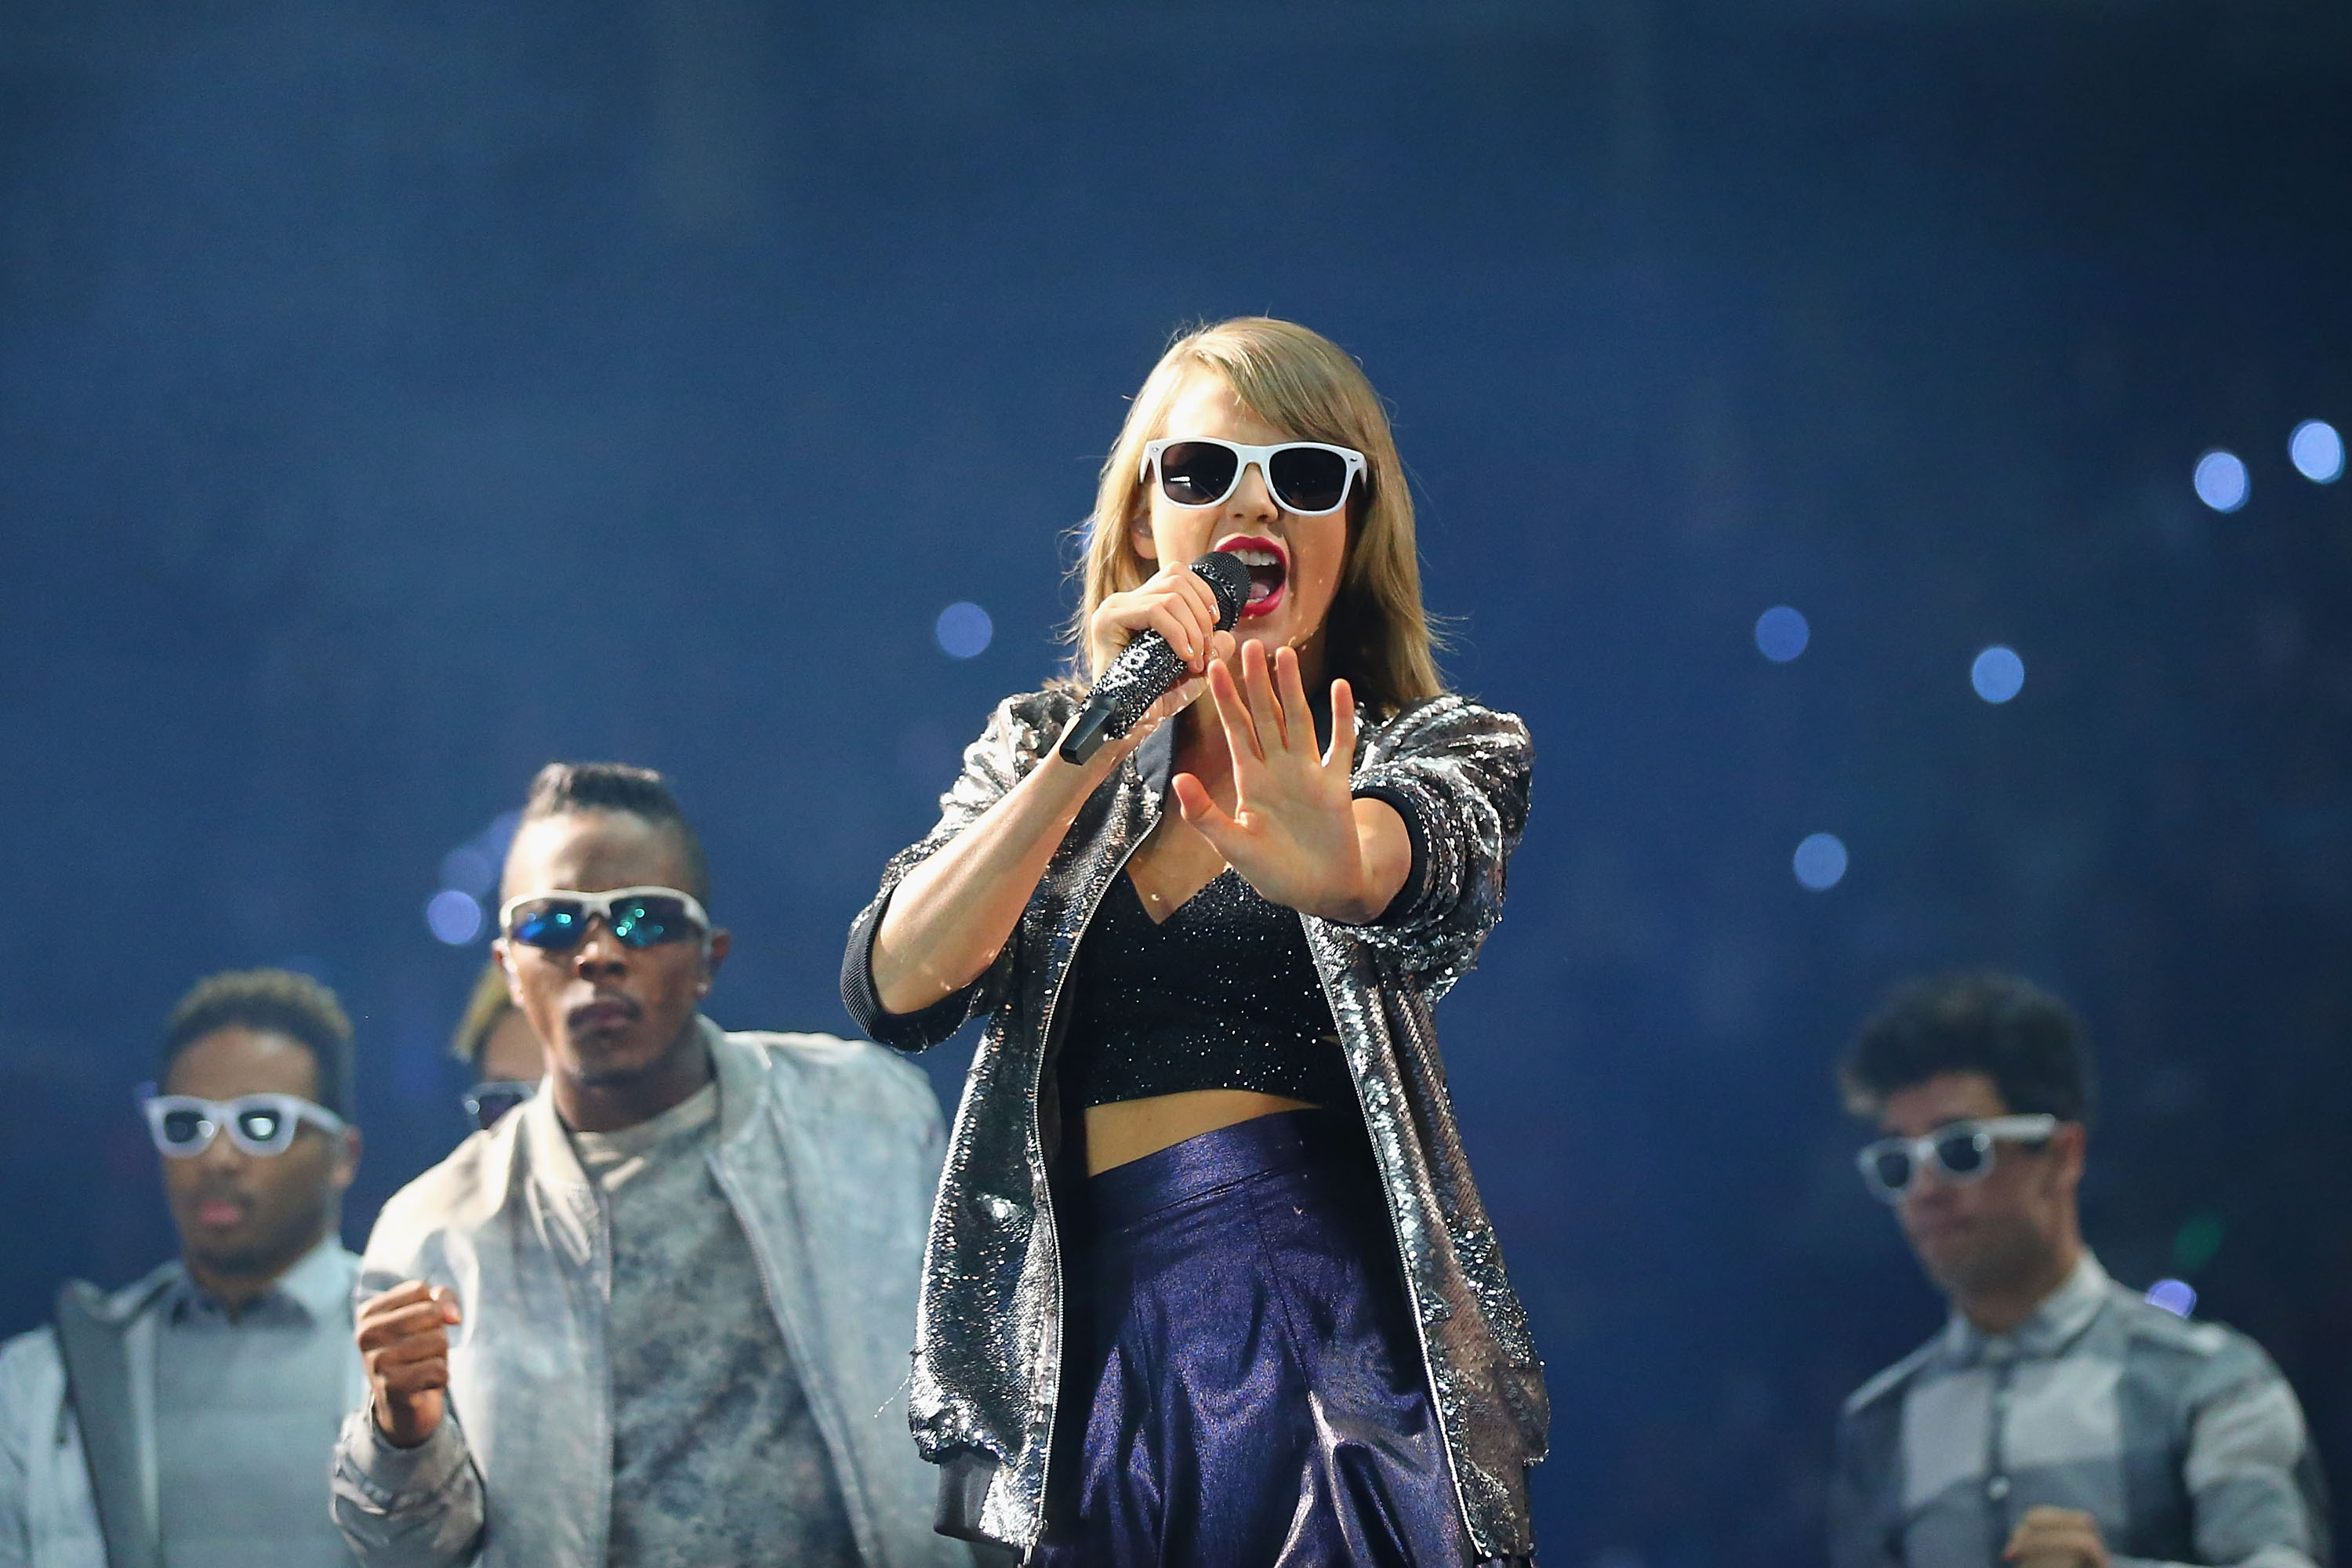 Taylor Swift The 1989 World Tour Live In St. Louis